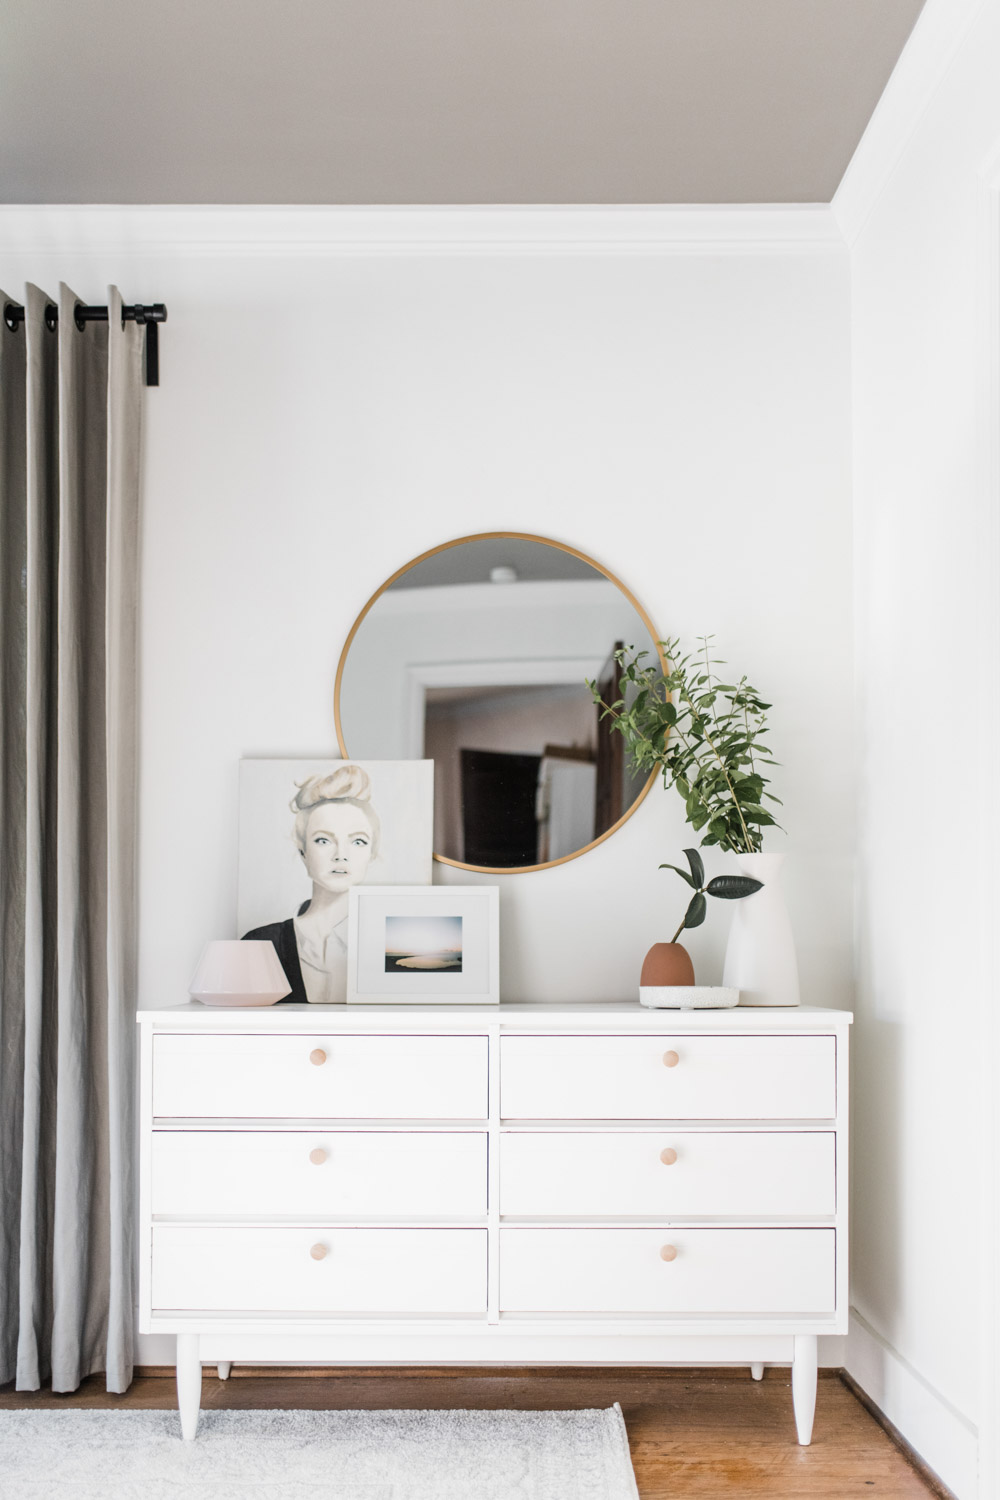 Design*Sponge | Bedroom Updates Before Baby